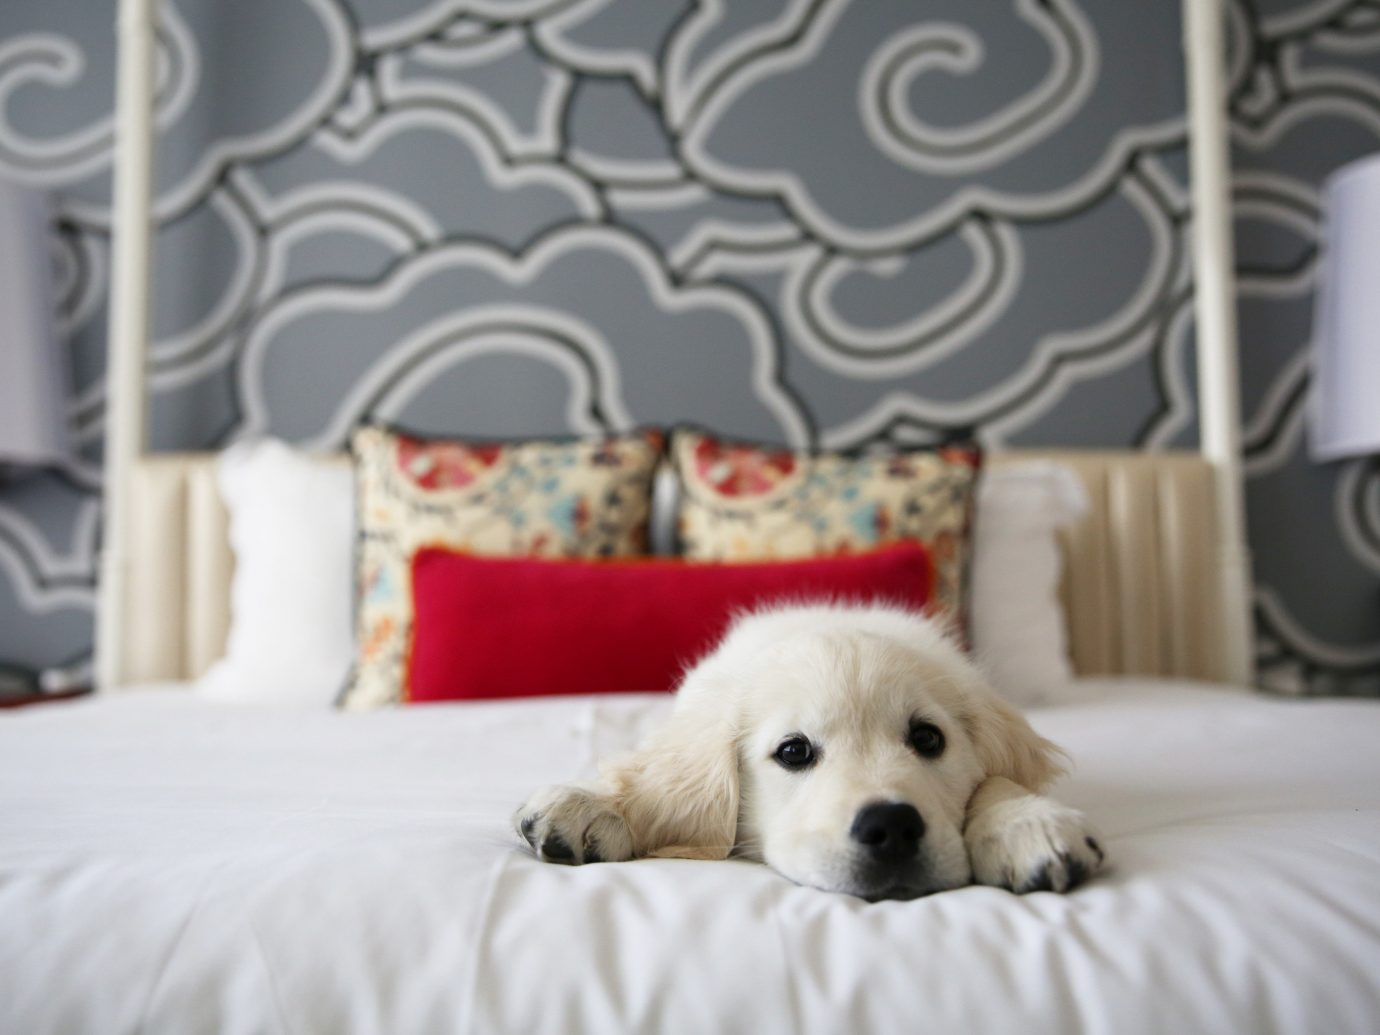 Offbeat indoor bed Dog mammal white product laying dog like mammal golden retriever pillow bedclothes puppy dog crossbreeds